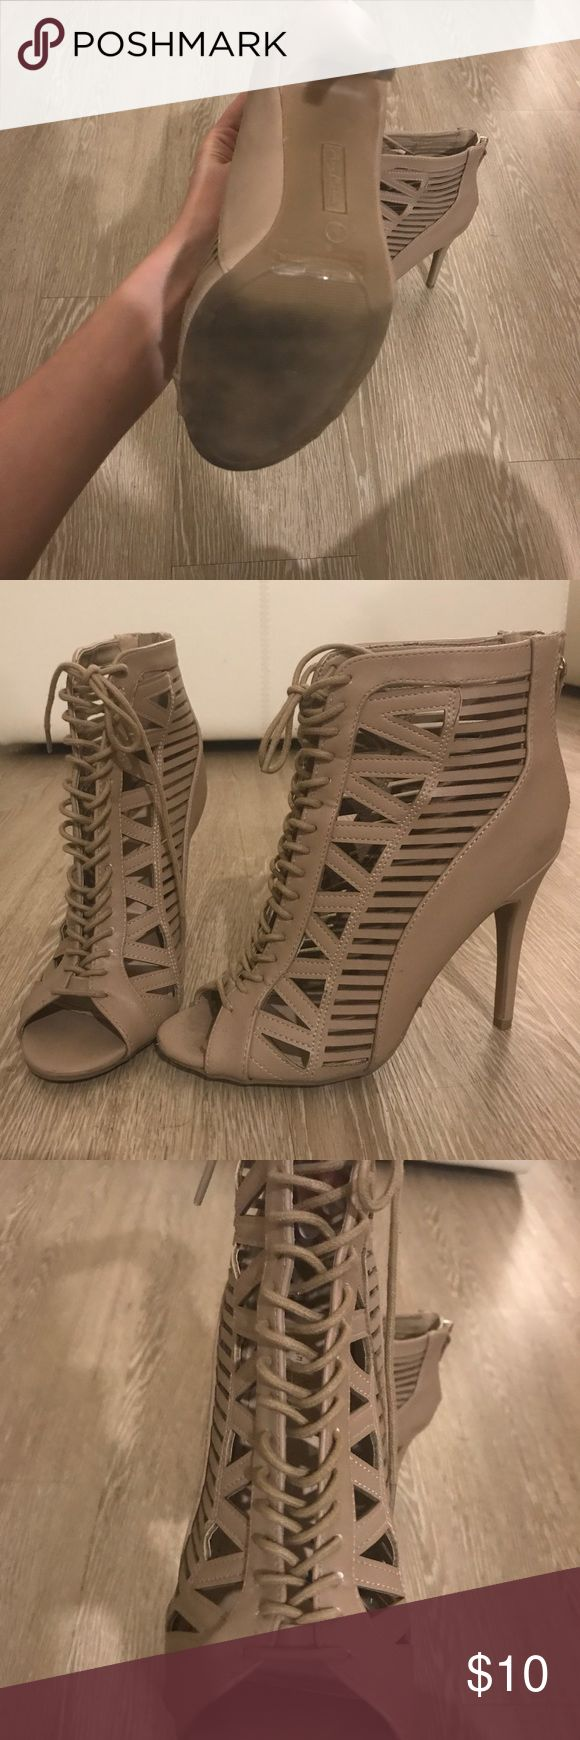 Anne Michelle Tan Lace Up Heels Only worn a few times! Very cute with skinny jeans or a summer dress. Anne Michelle Shoes Heels